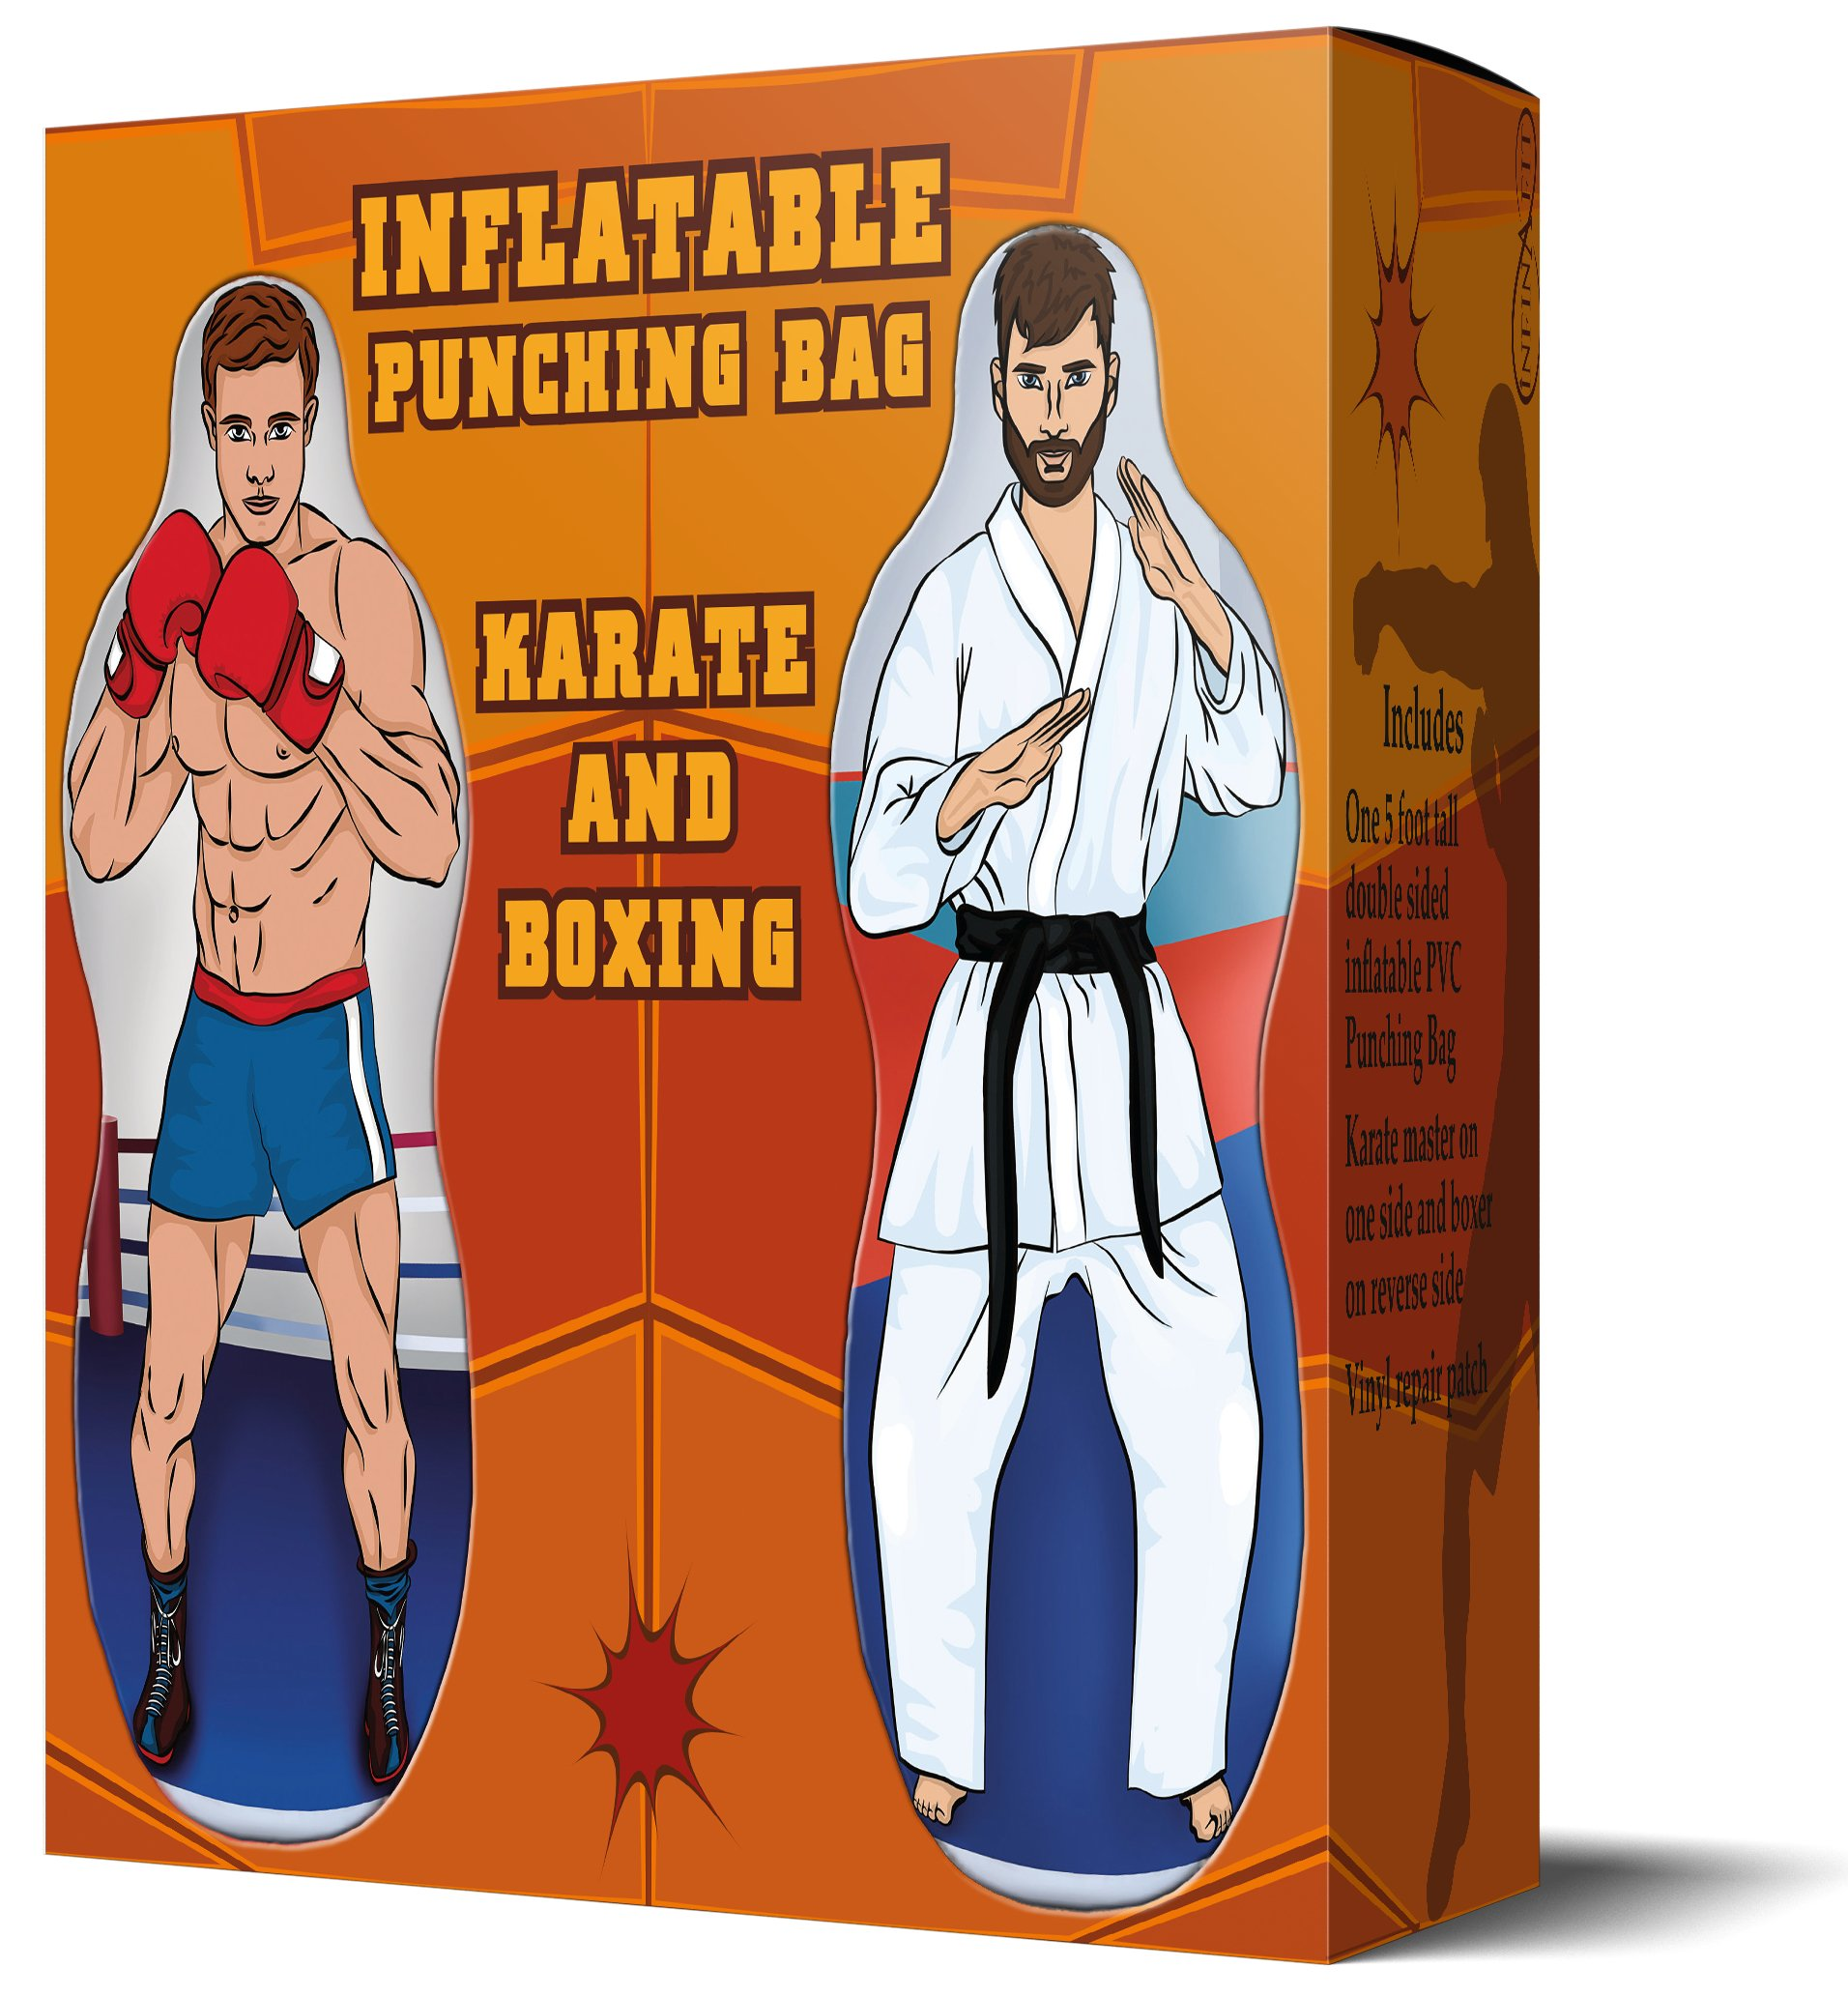 Infinafit Inflatable Two Sided Karate and Boxing Punching Bag   Includes One Inflatable 5 Foot Tall Bop Bag with Illustration of a Karate Master on One Side and Boxer on Reverse Side by ImpiriLux (Image #5)